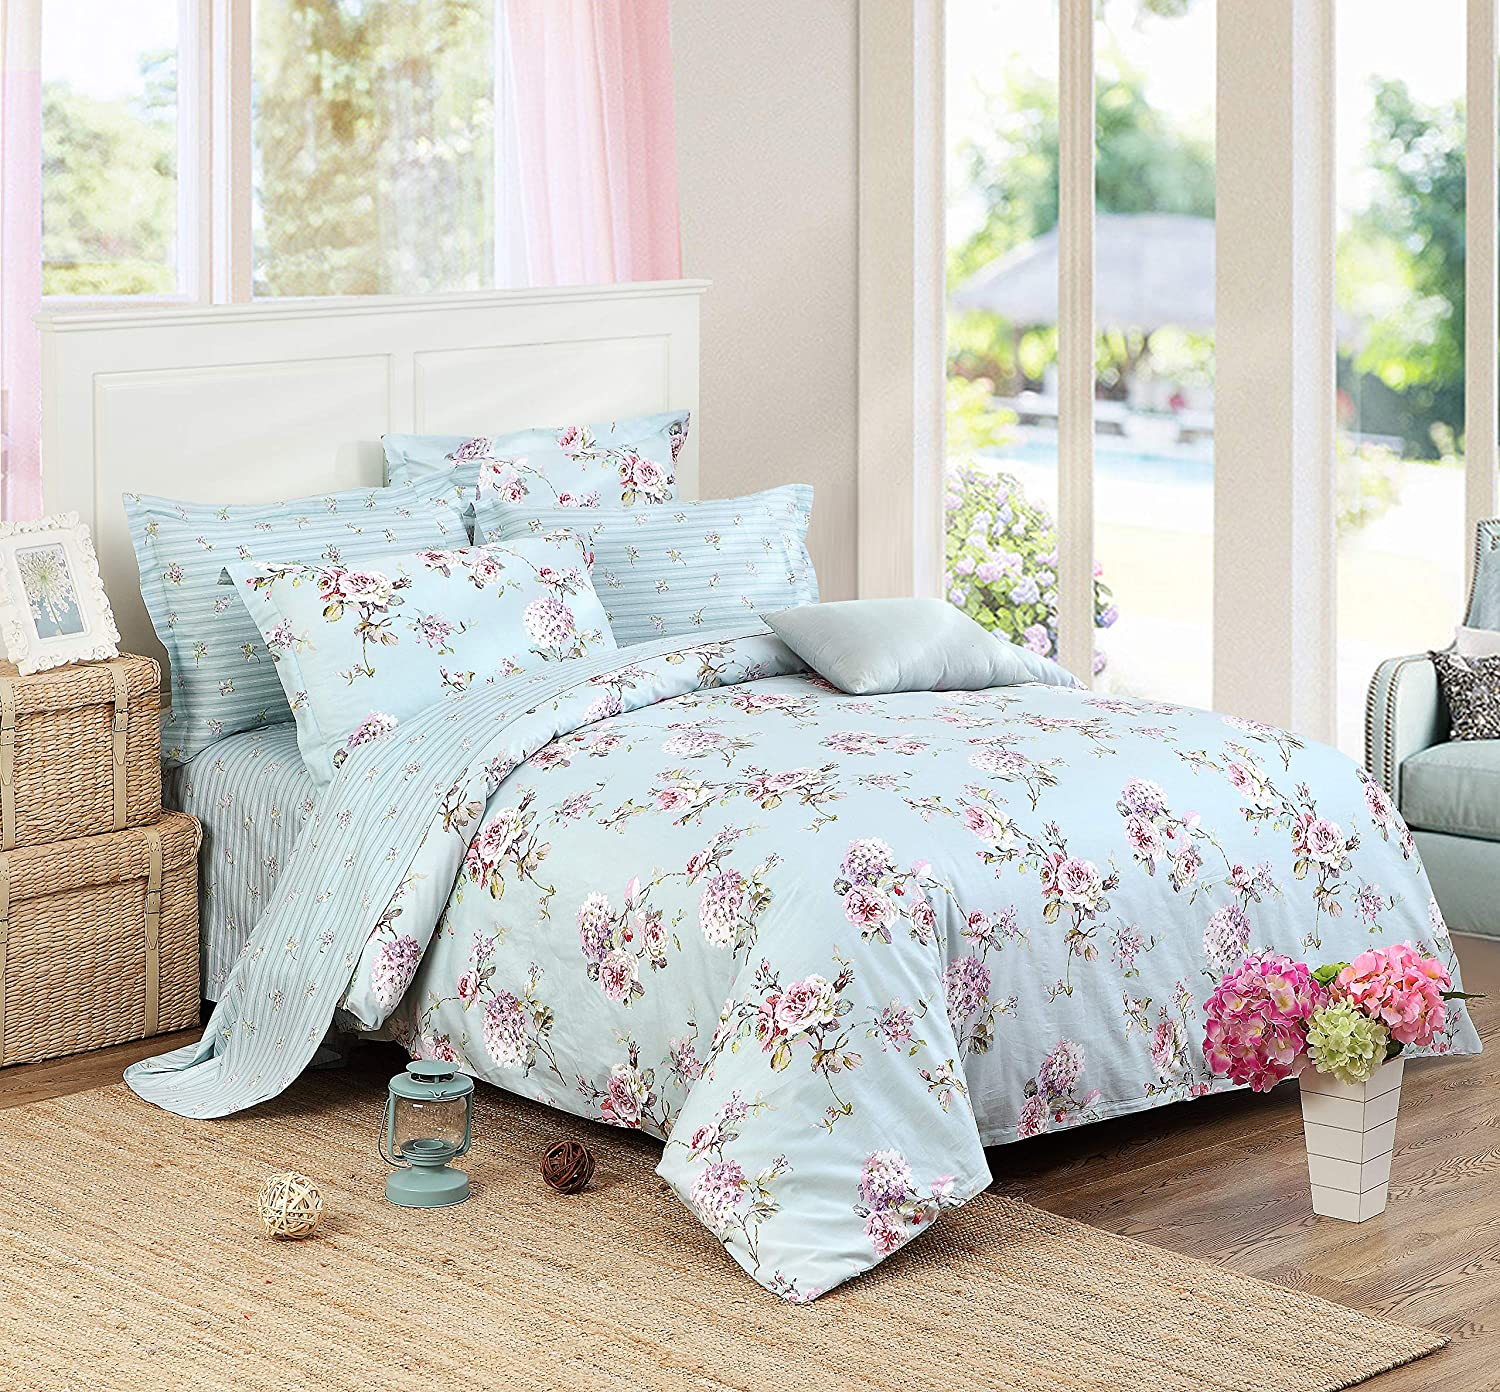 Hydrangea Queen FADFAY Shabby Duvet Cover Sheet Set 7-Pieces Hydrangea Fashionable Flora 100% Cotton Bedding Hypoallergenic,(1 Duvet Cover,1 Fitted Sheet,1 Flat Sheet,2 Standard+2 King Pillowcases) Cal King Size